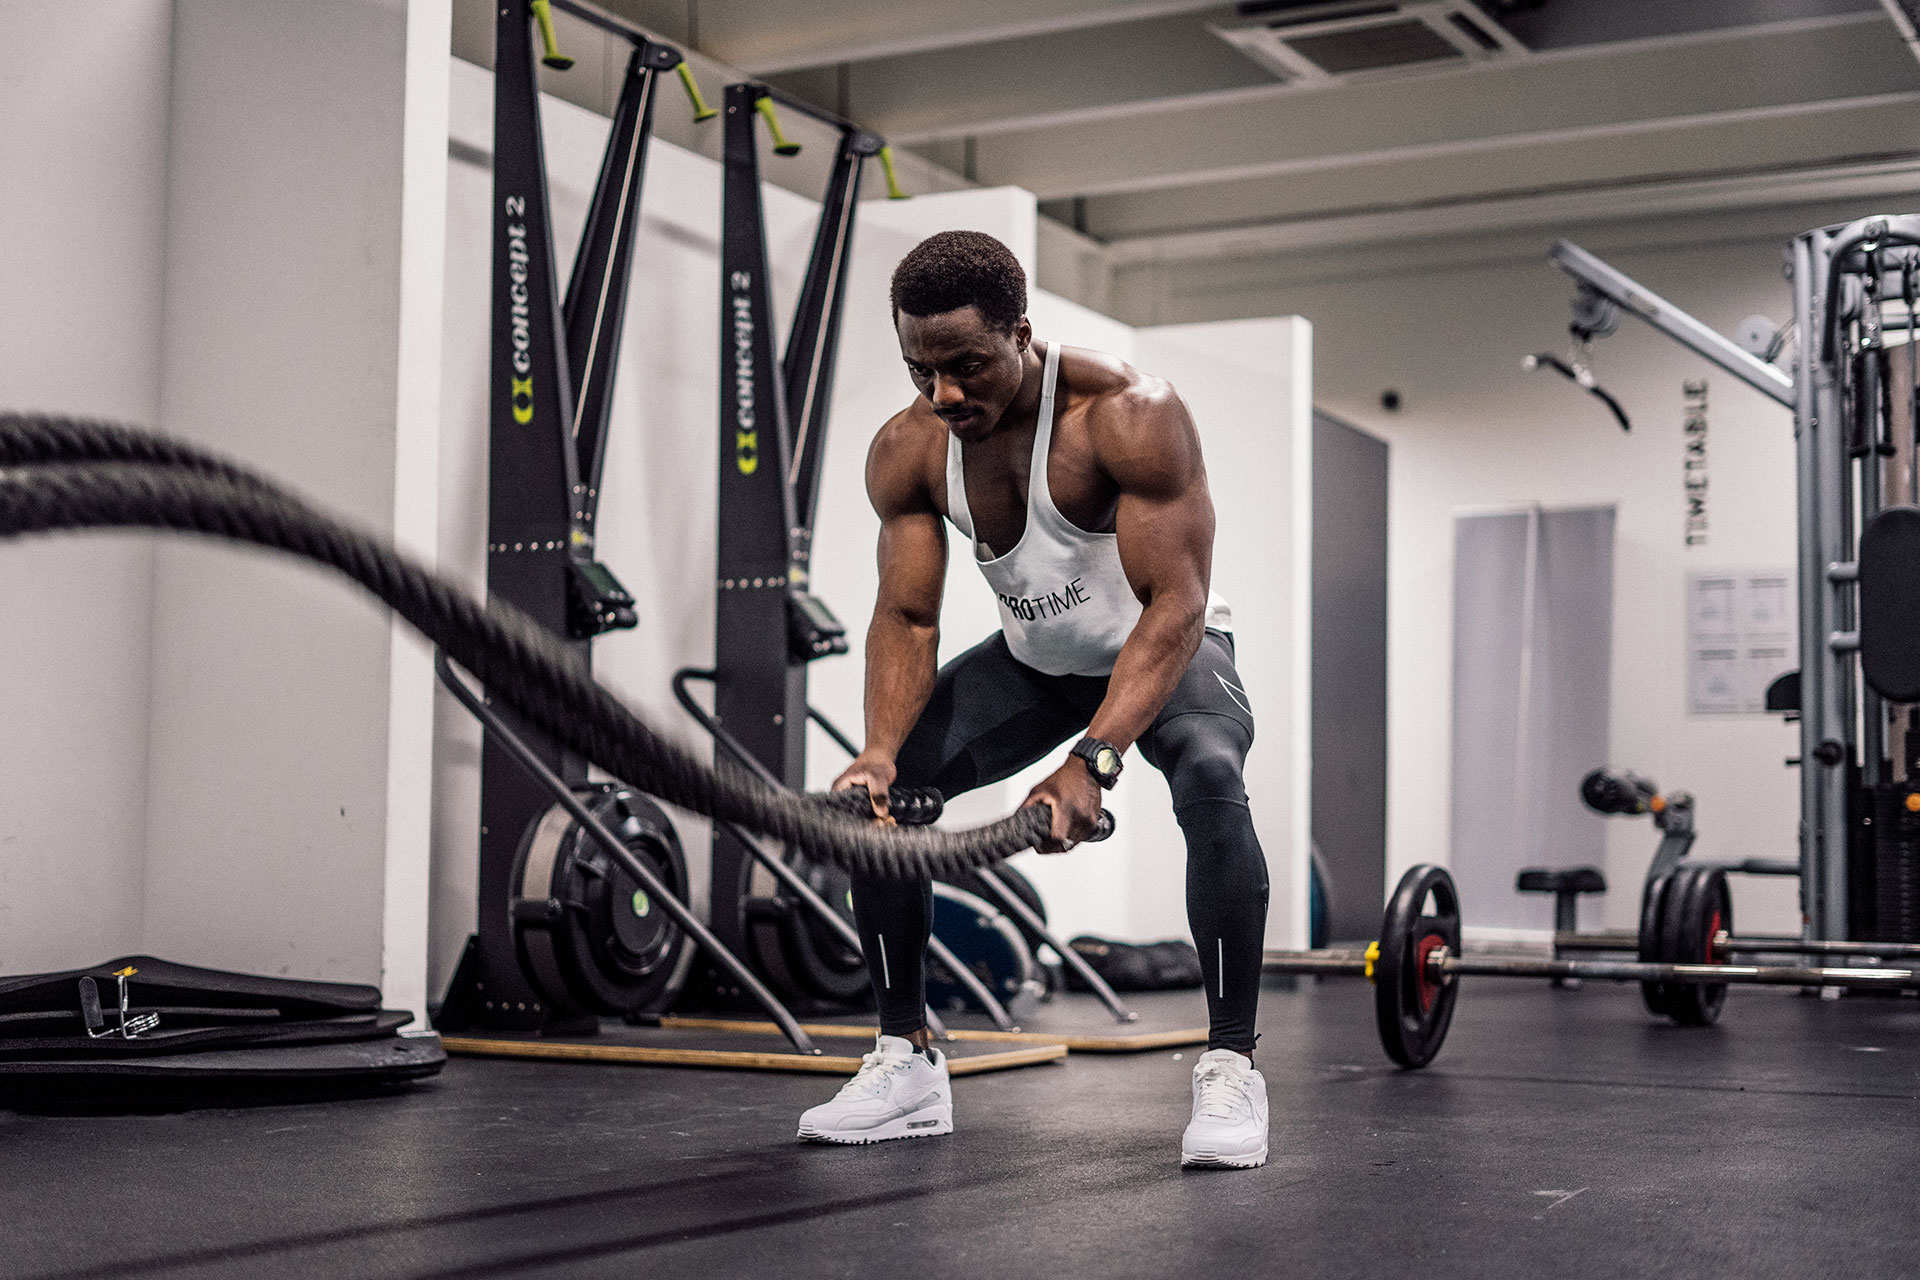 abraham-iwakun-fitness-client-project-by-Orfi-Media